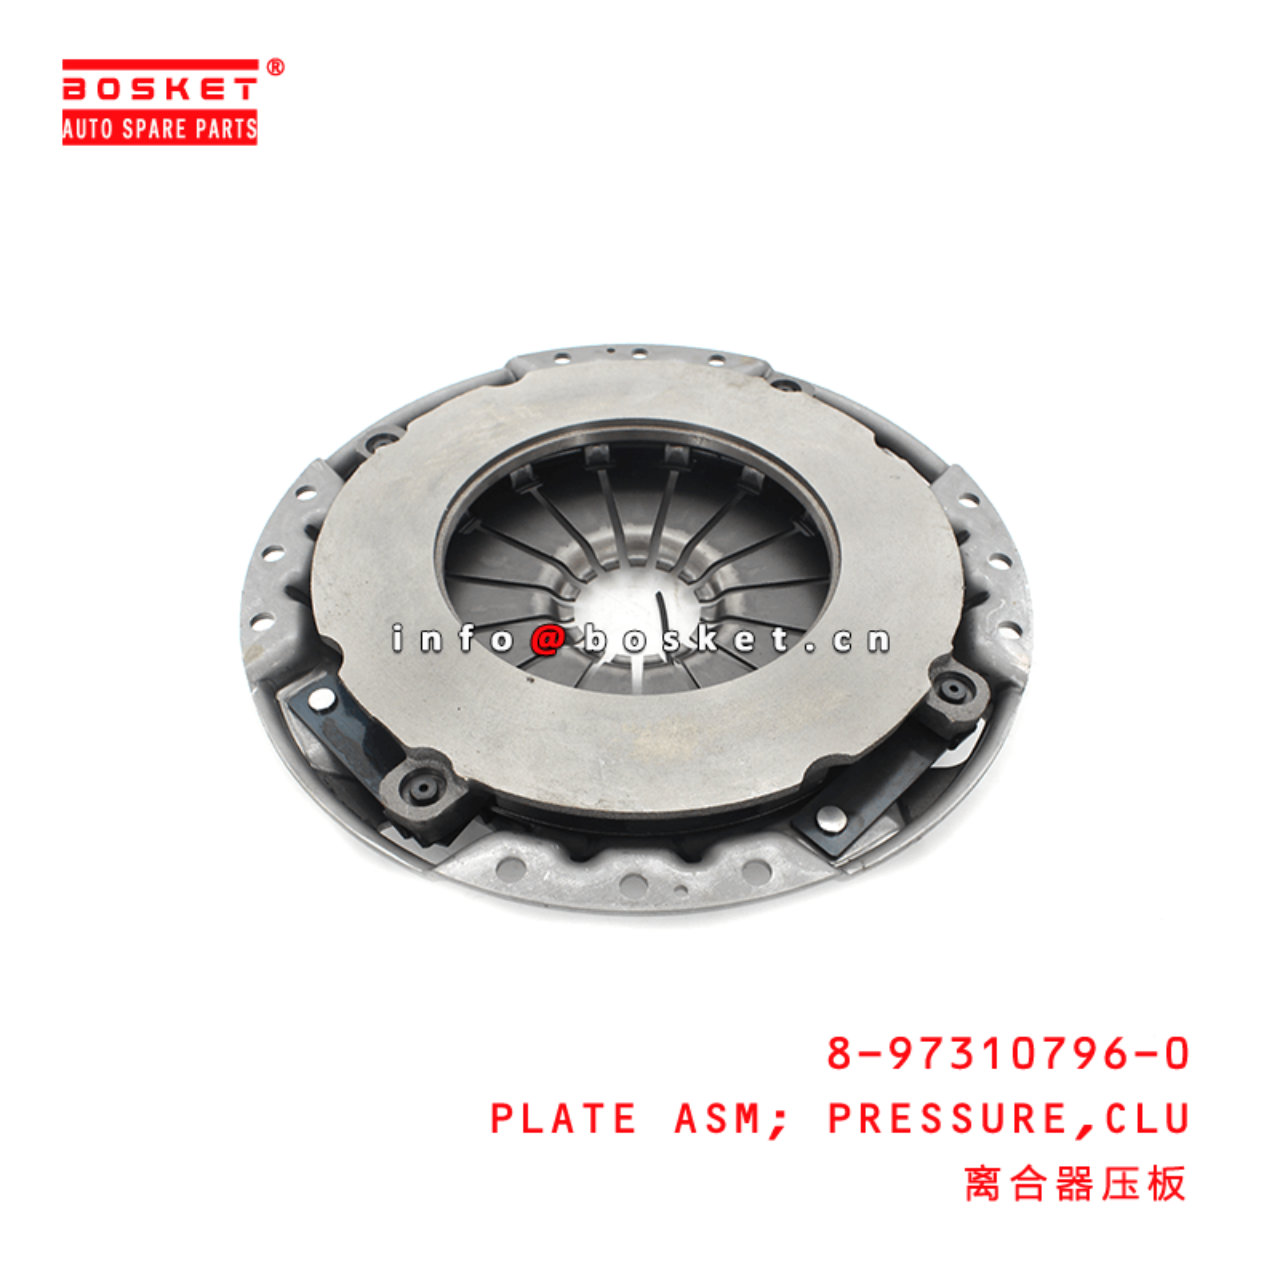 8-97310796-0 Clutch Pressure Plate Assembly 8973107960 Suitable for ISUZU NPR66 4HF1